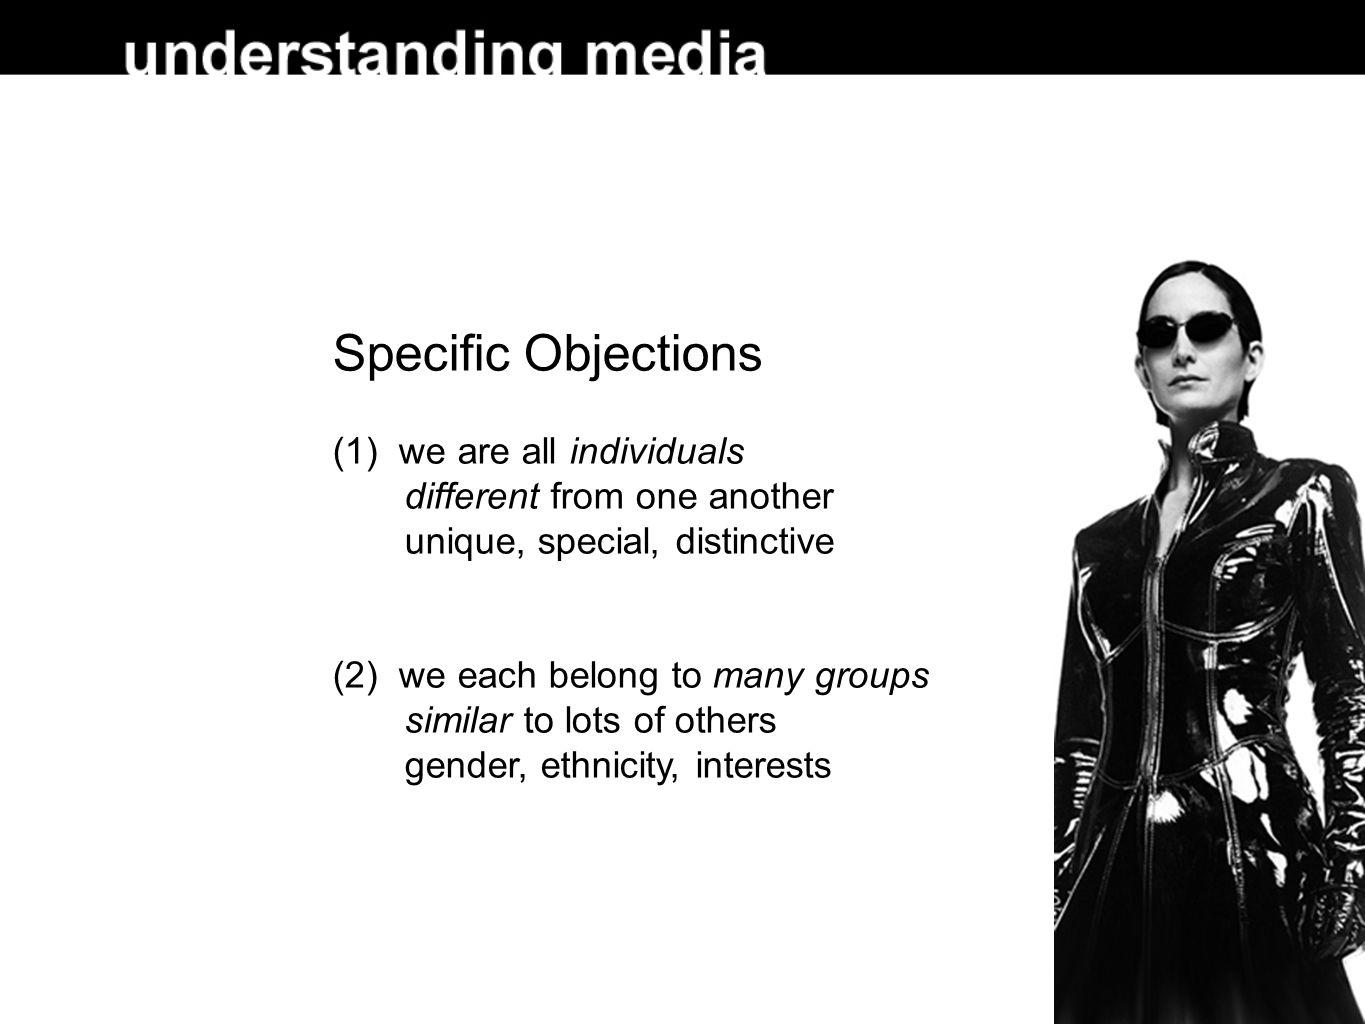 Specific Objections (1) we are all individuals different from one another unique, special, distinctive (2) we each belong to many groups similar to lots of others gender, ethnicity, interests